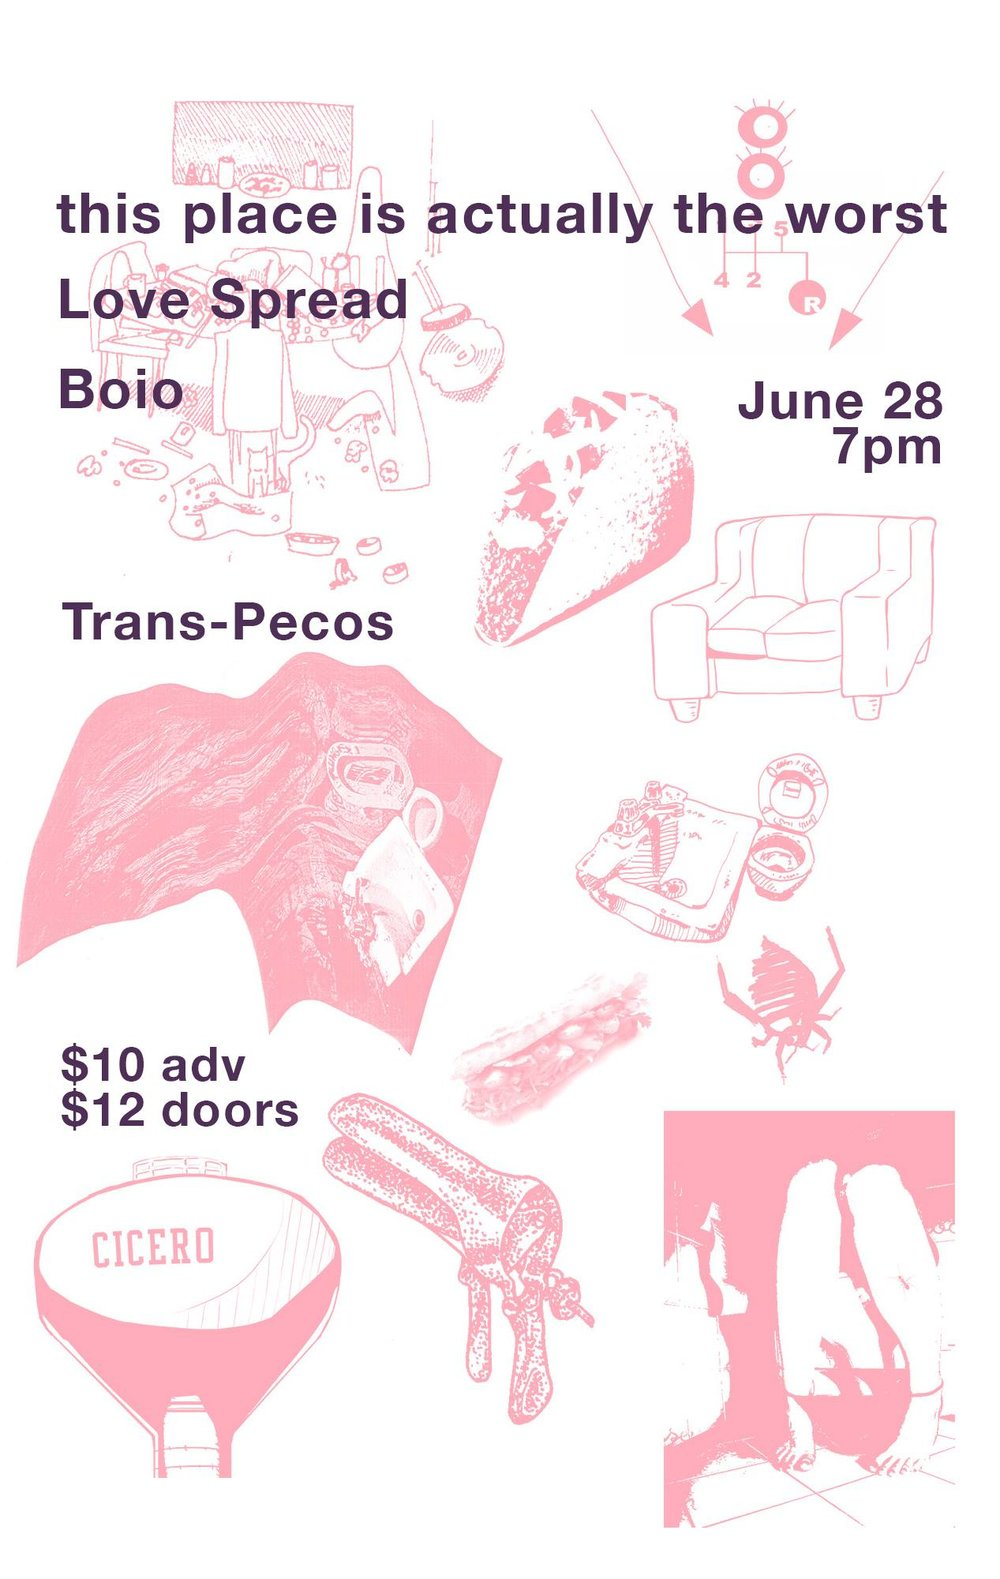 This place is actually the worst  record release with our friends  LOVE SPREAD  &  Boio . ♥  Trans-Pecos ALL AGES $10 adv $12 doors  Flyer features an art collage by our friends: Megan Arnold, Angie Moon Conte, Anthony Di Fazio, Jillian Flair, Aaron Garcia, Tanea Hynes, Emmanuel Reyes, Seth Scantlen, Phong Tran.  https://thisplaceisactuallytheworst.bandcamp.com/track/biggest-secrets-on-planet-earth